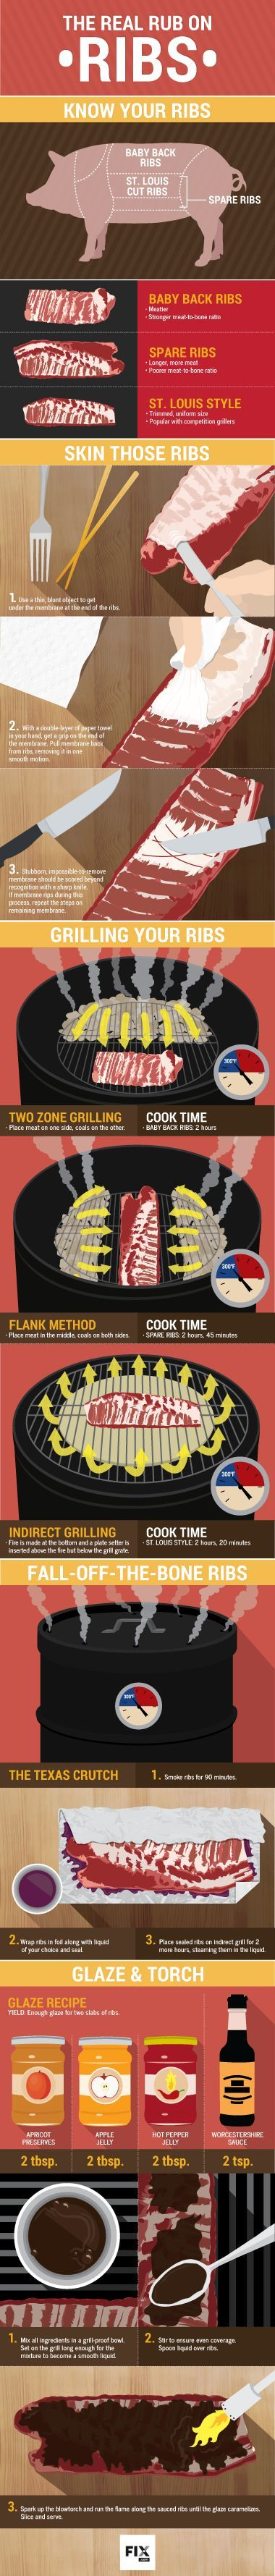 Method For Perfect Grilled Ribs | Fix.com